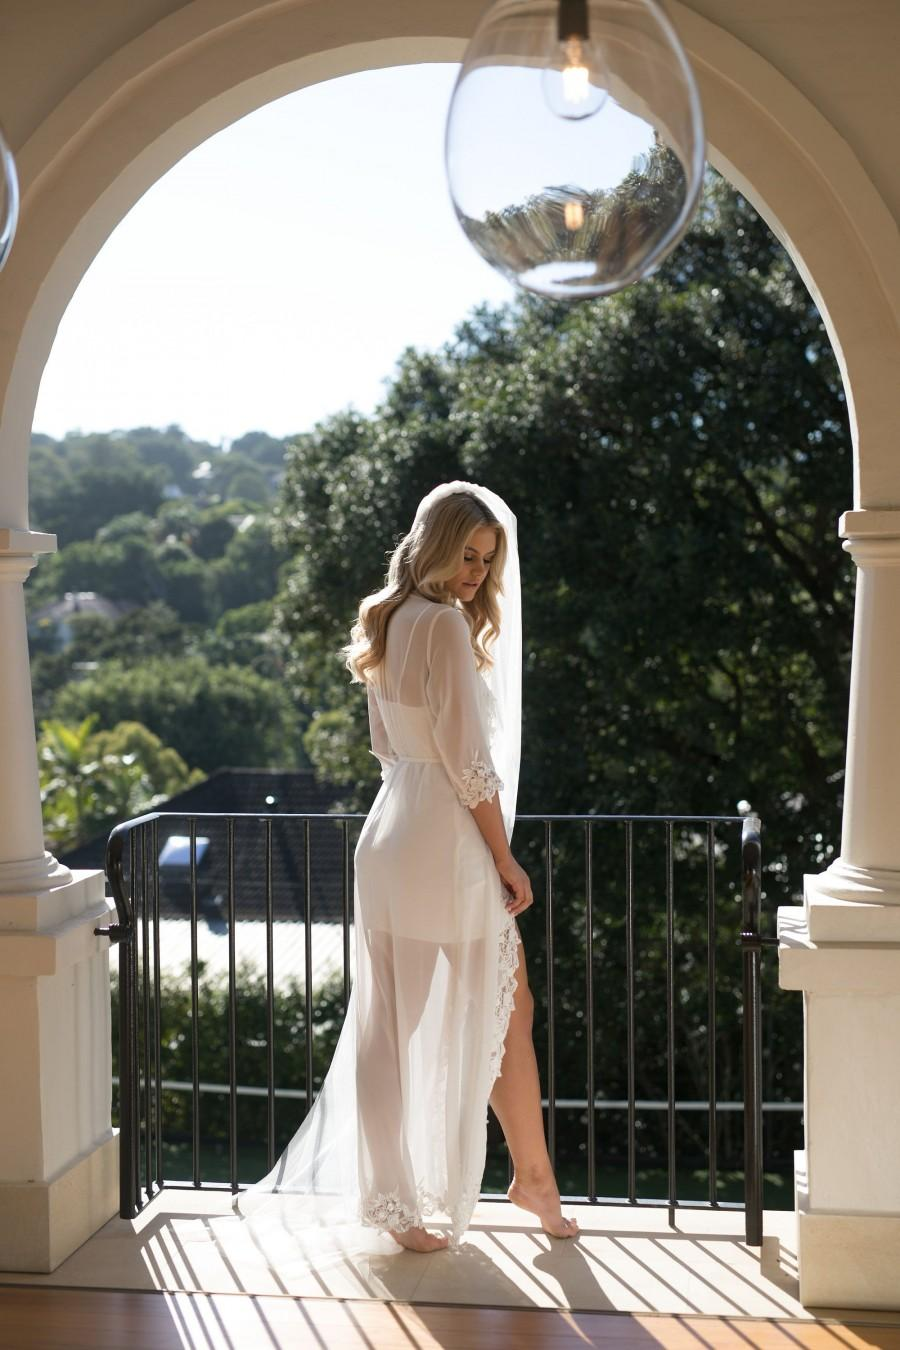 Wedding - Lace Trim Maxi Including Slip / Lace Bridal Robe / Bridesmaid Robes / Robe / Bridal Robe / Bride Robe / Bridal Party Robes / IRIS